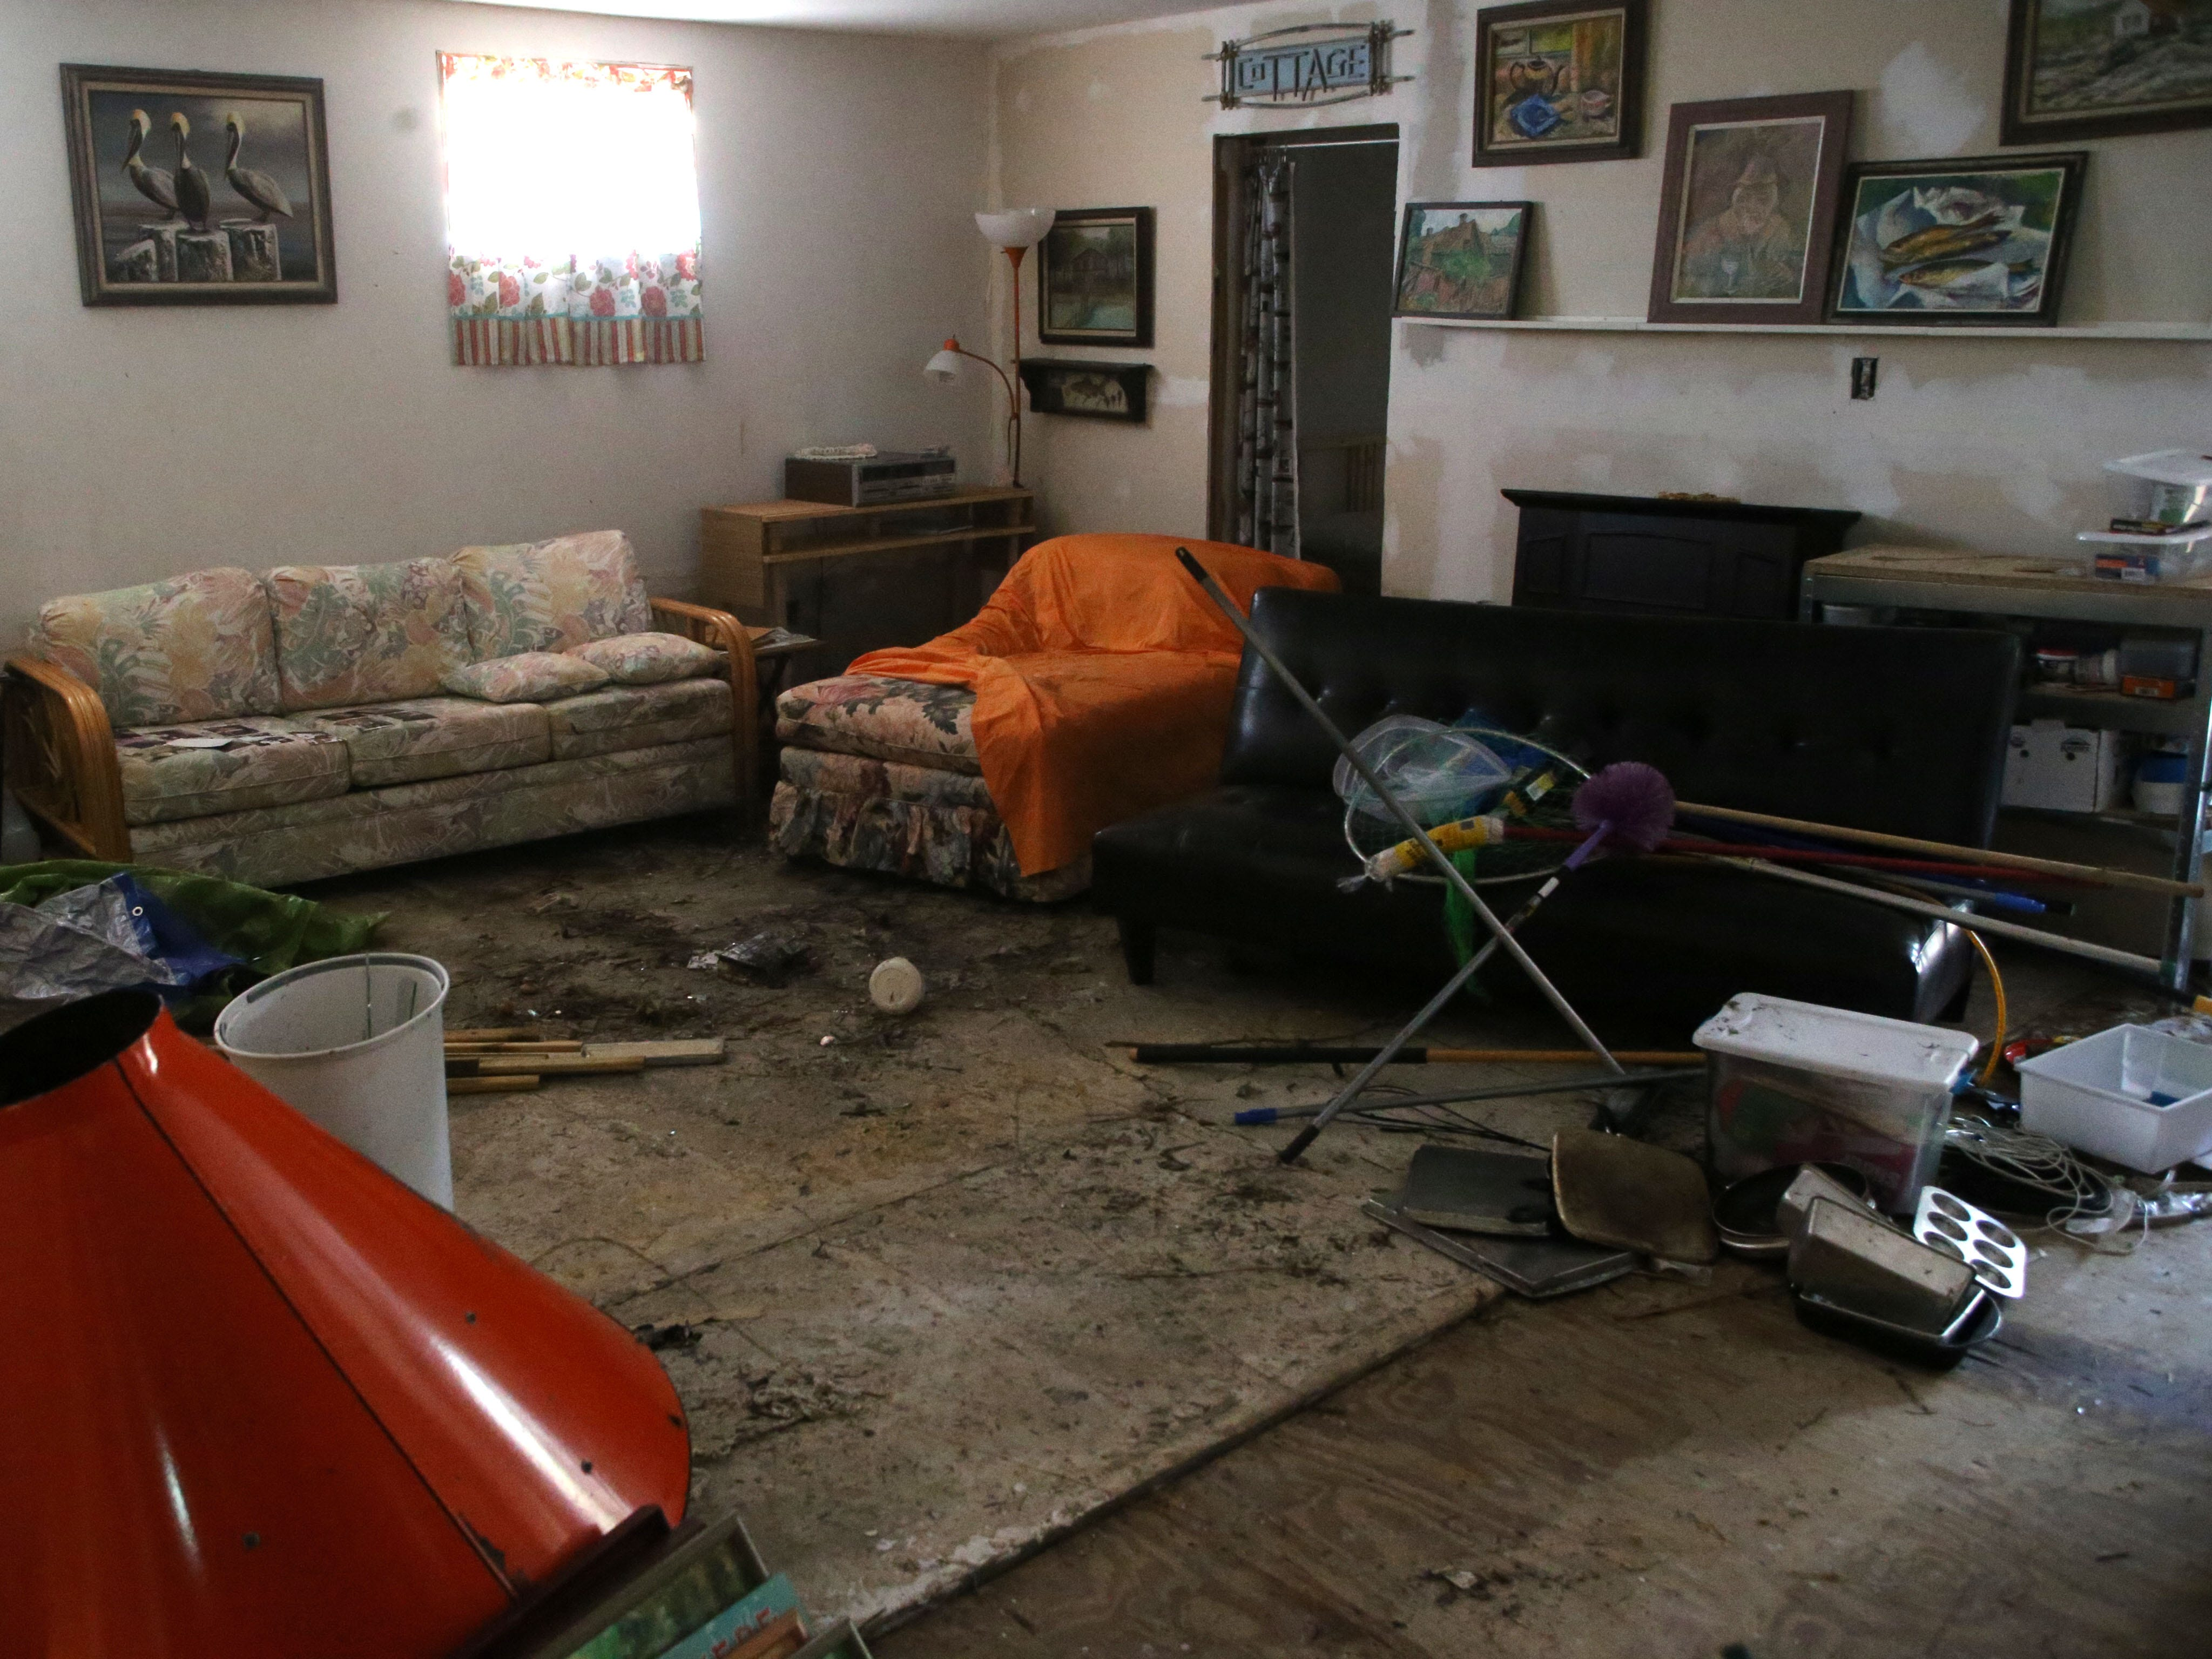 Inside Mollergren's home, where water reached the ceiling during Hurricane Michael on Monday, Oct. 15, 2018.